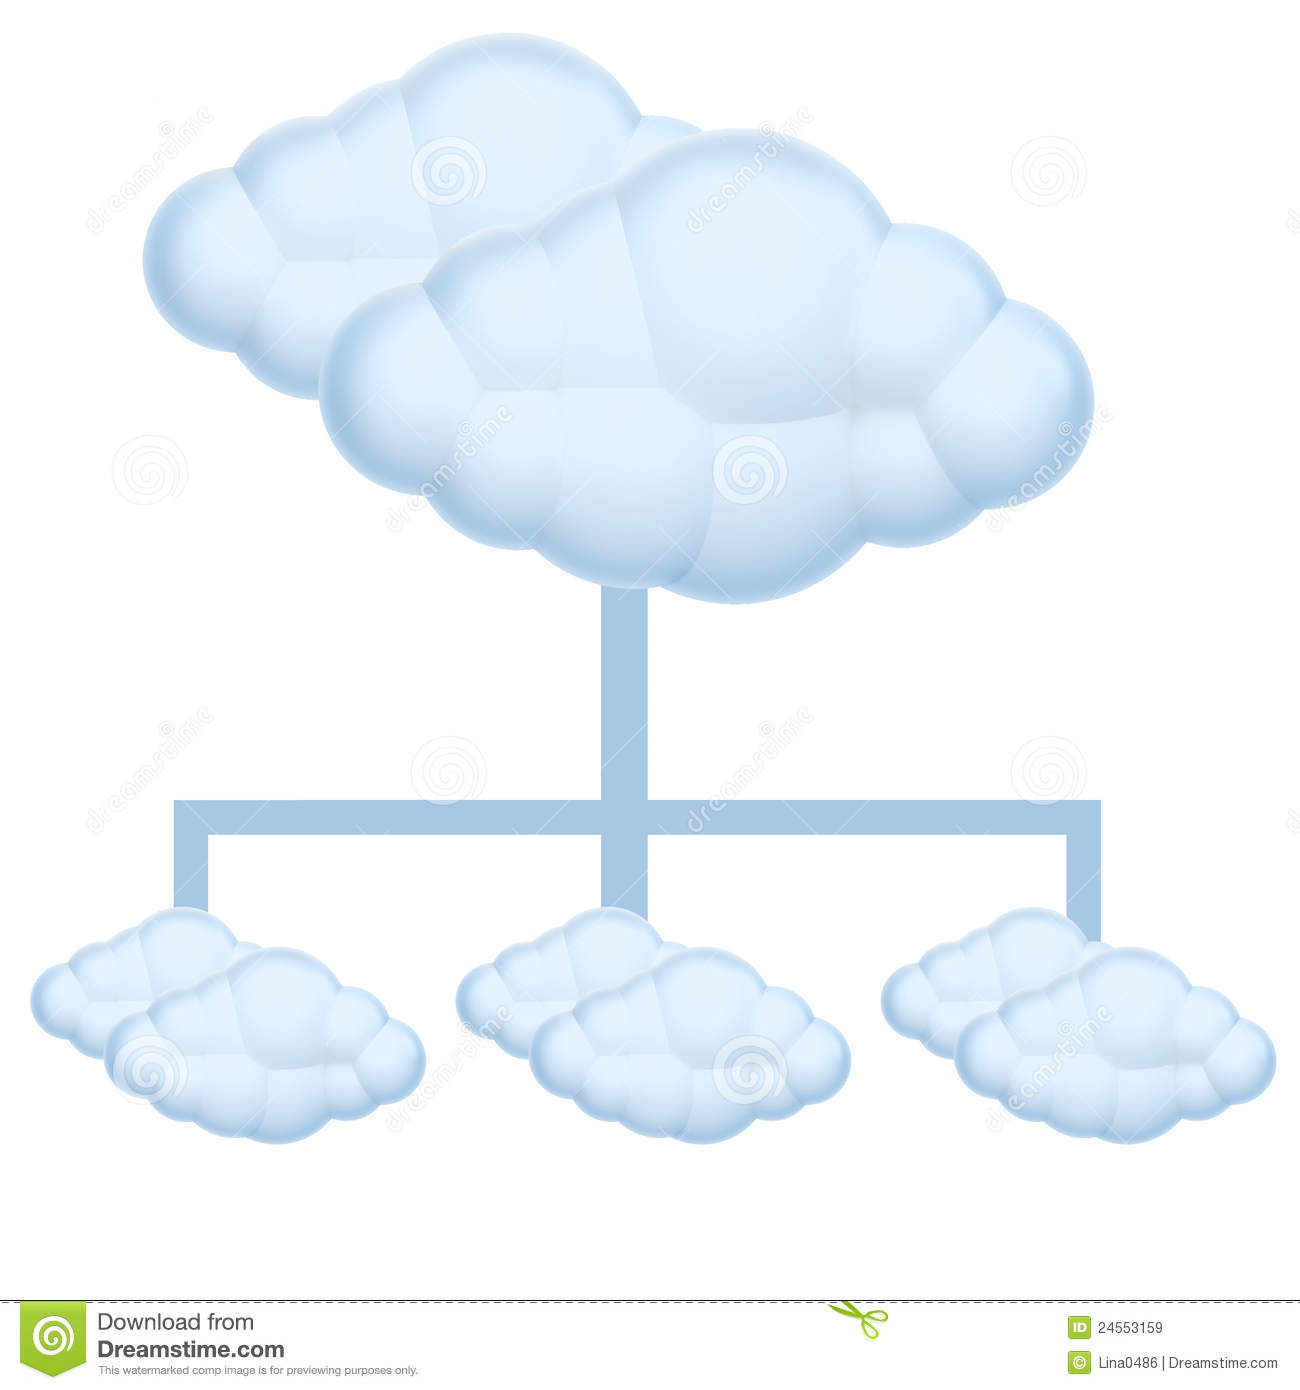 Cloud Diagram Royalty Free Stock Images - Image: 24553159